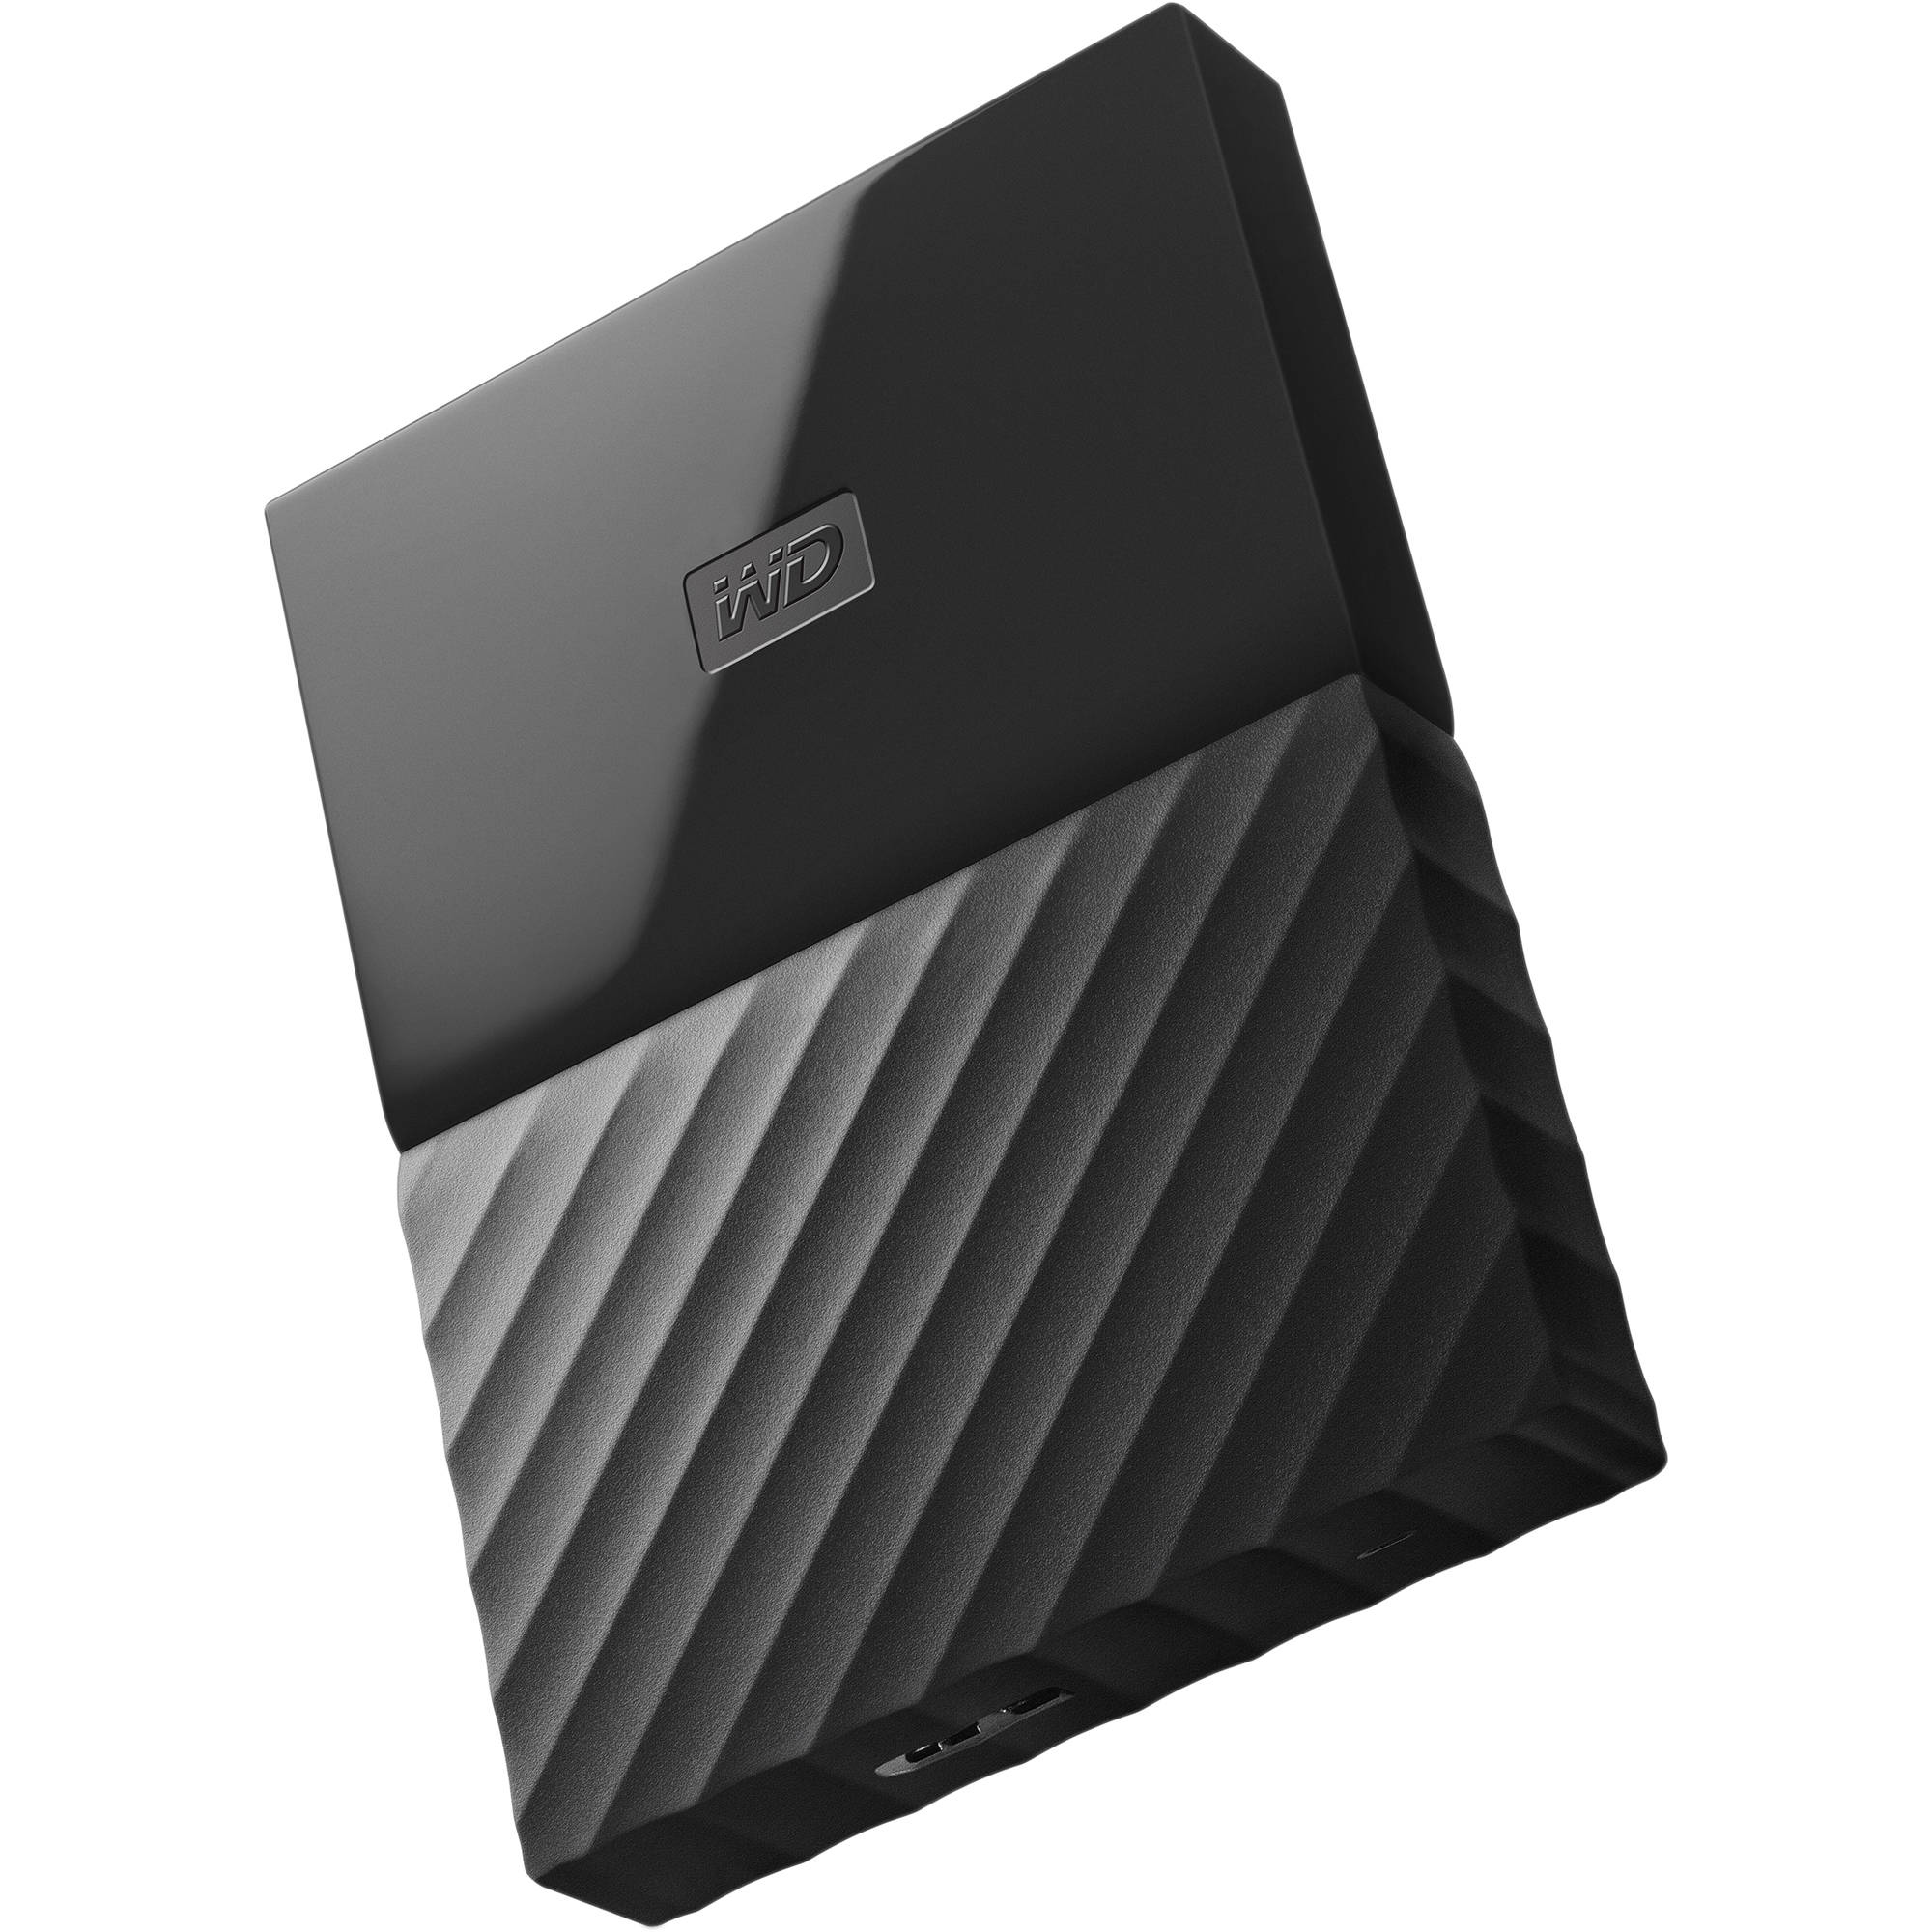 HD 2 TERRA EXTERNAL WD MY PASSPORT USB3 ,External HDD